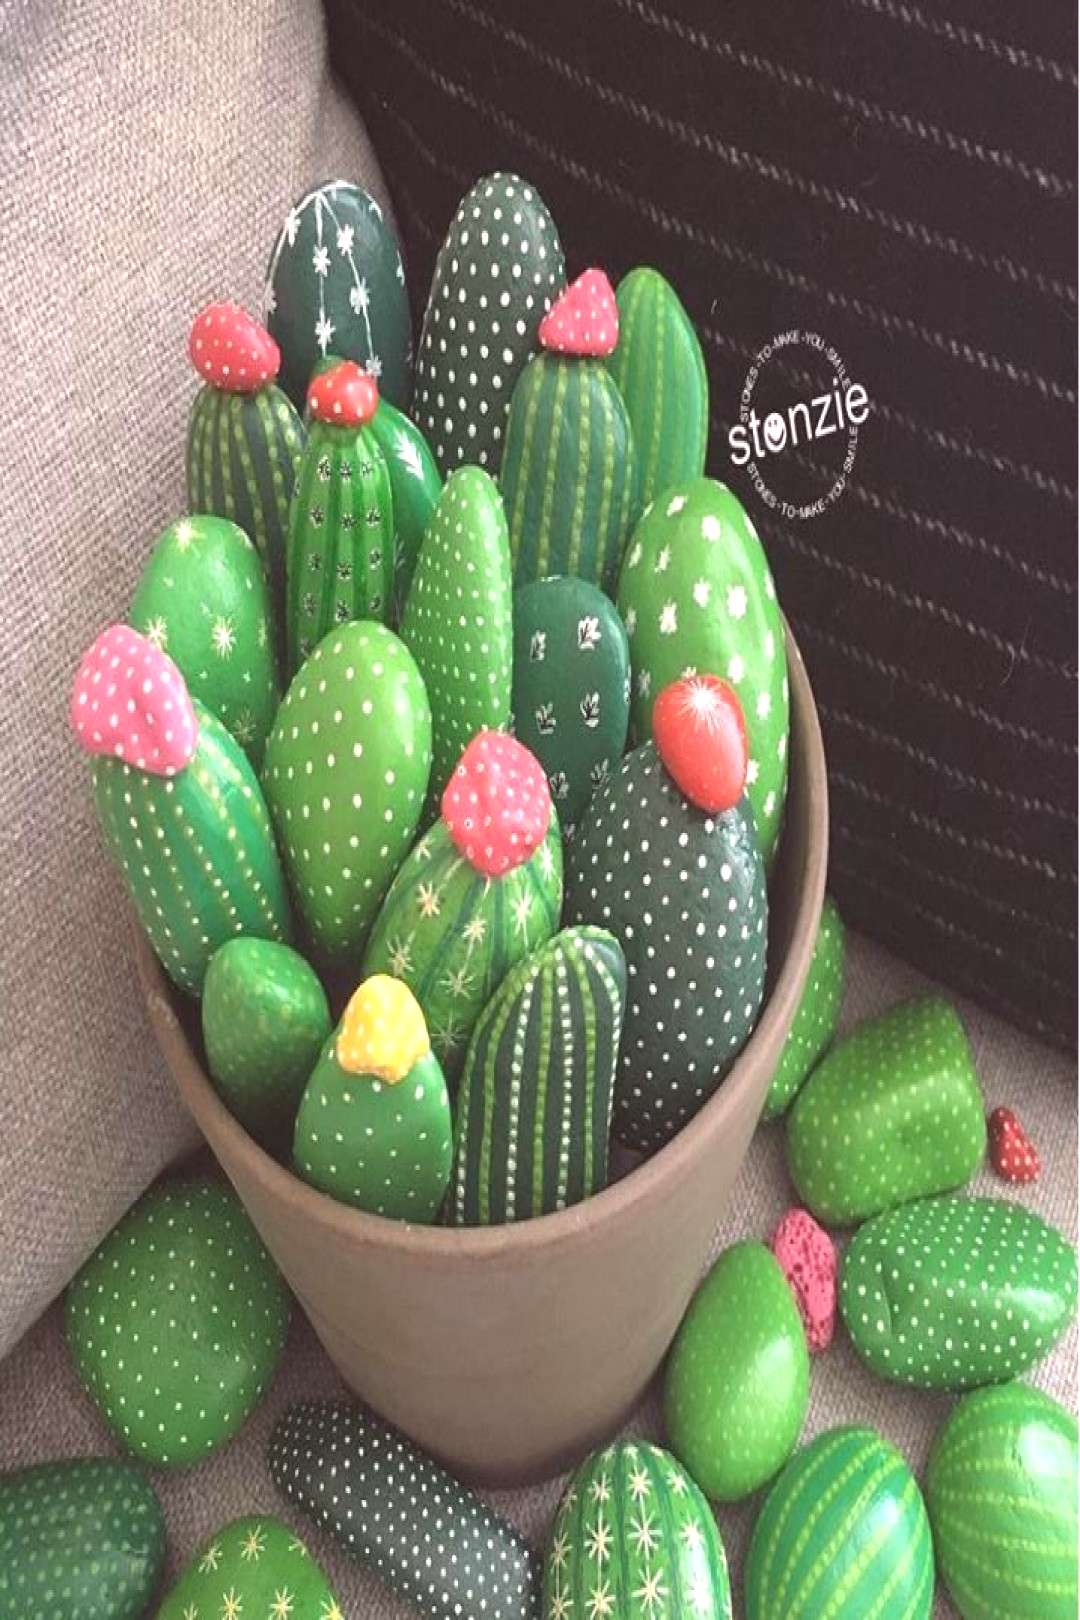 How to make a DIY painted rock cactus garden. There are more than 50 inspirational DIY painted ston